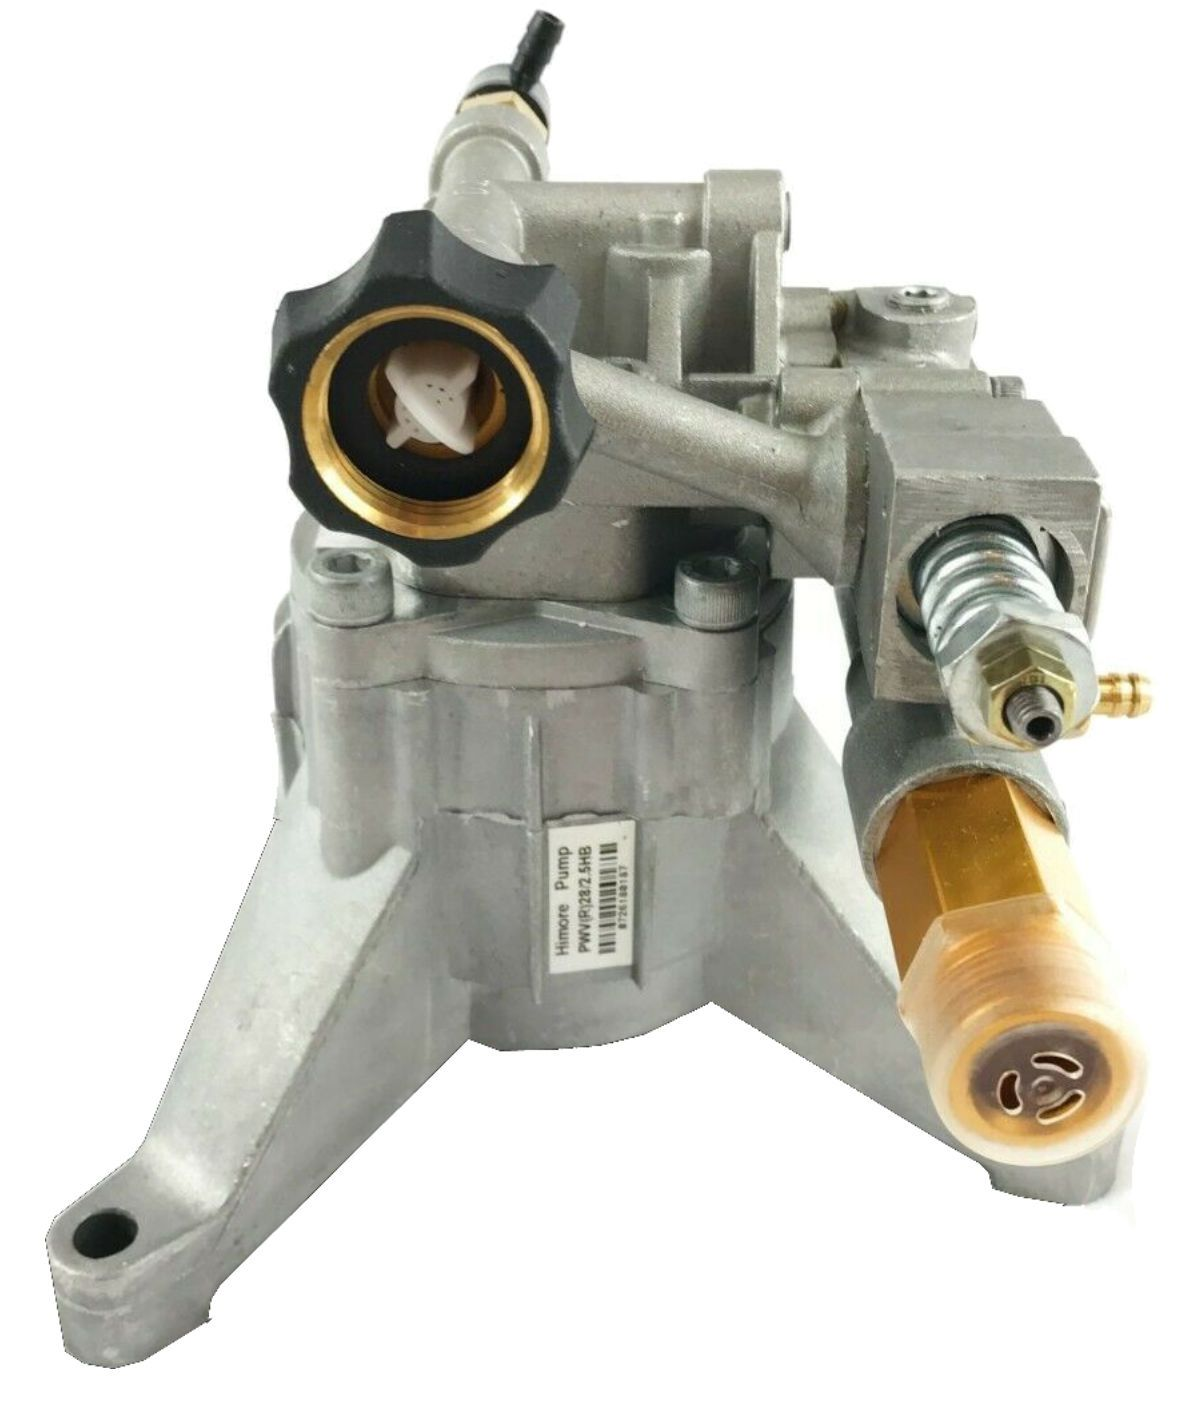 2700 PSI PRESSURE WASHER WATER PUMP Campbell Hausfeld PW1753V3LE - AE-Power